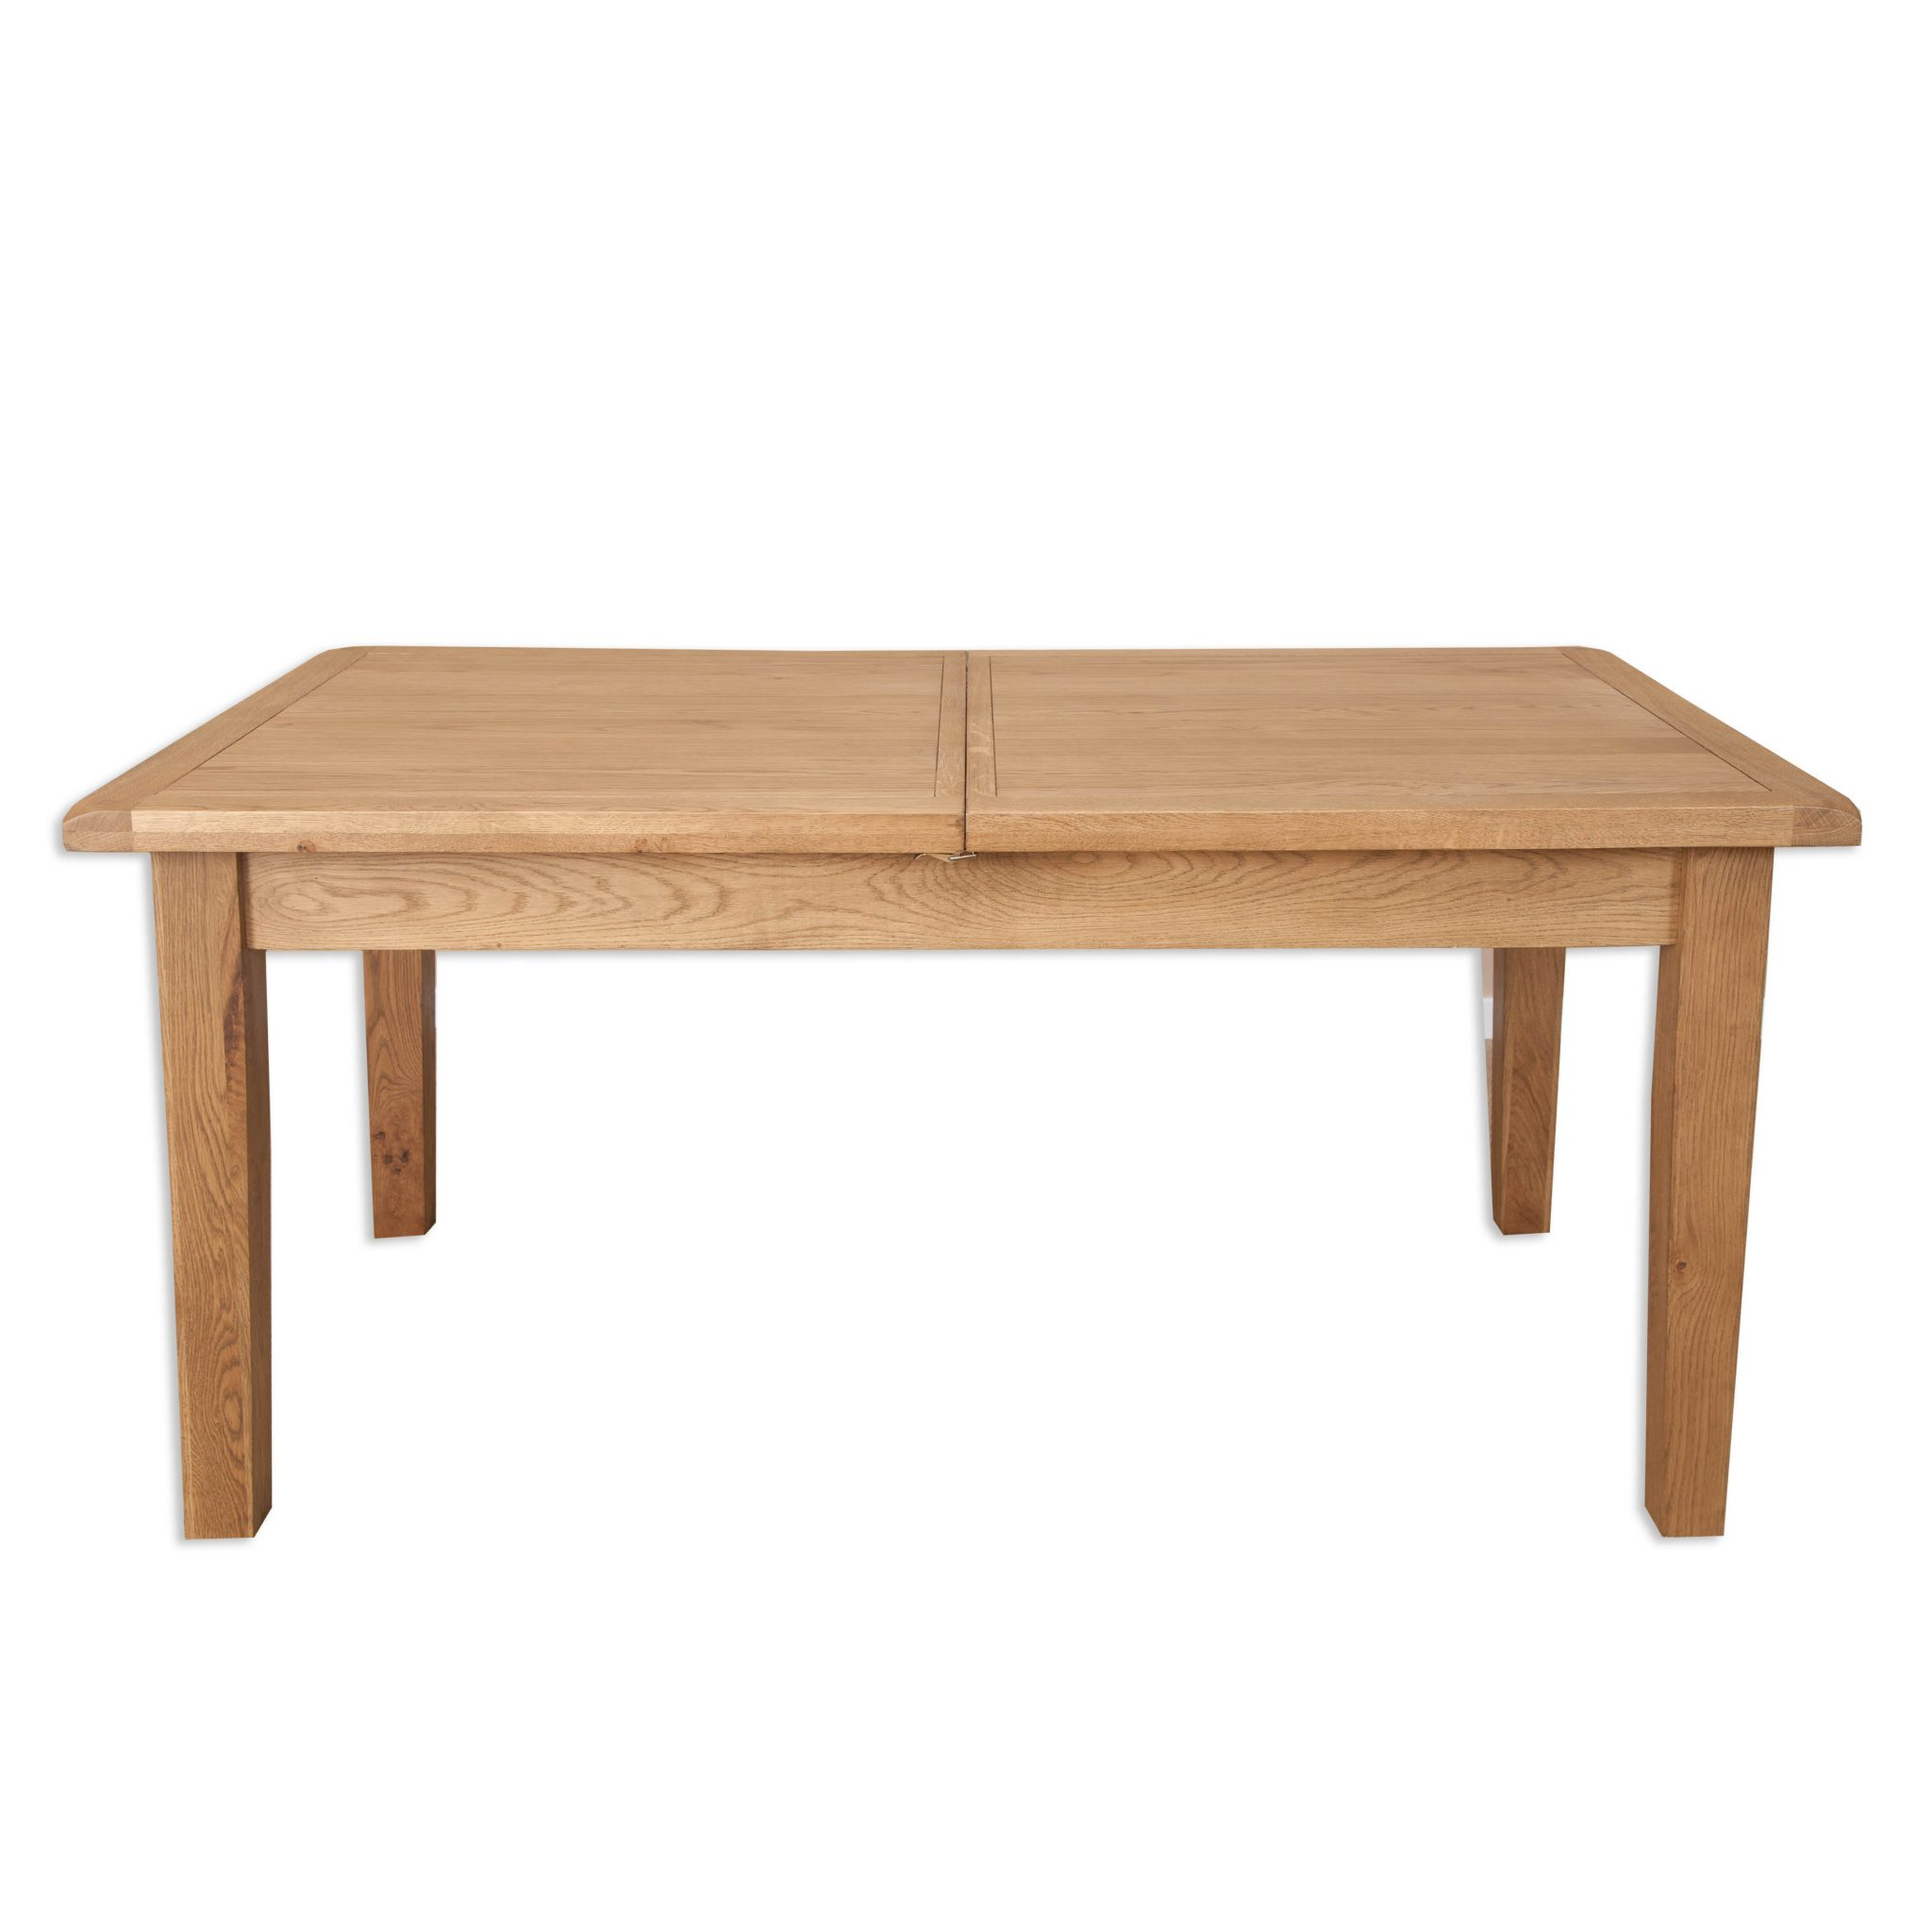 Melbourne Country extending dining table - Chesterfield ...